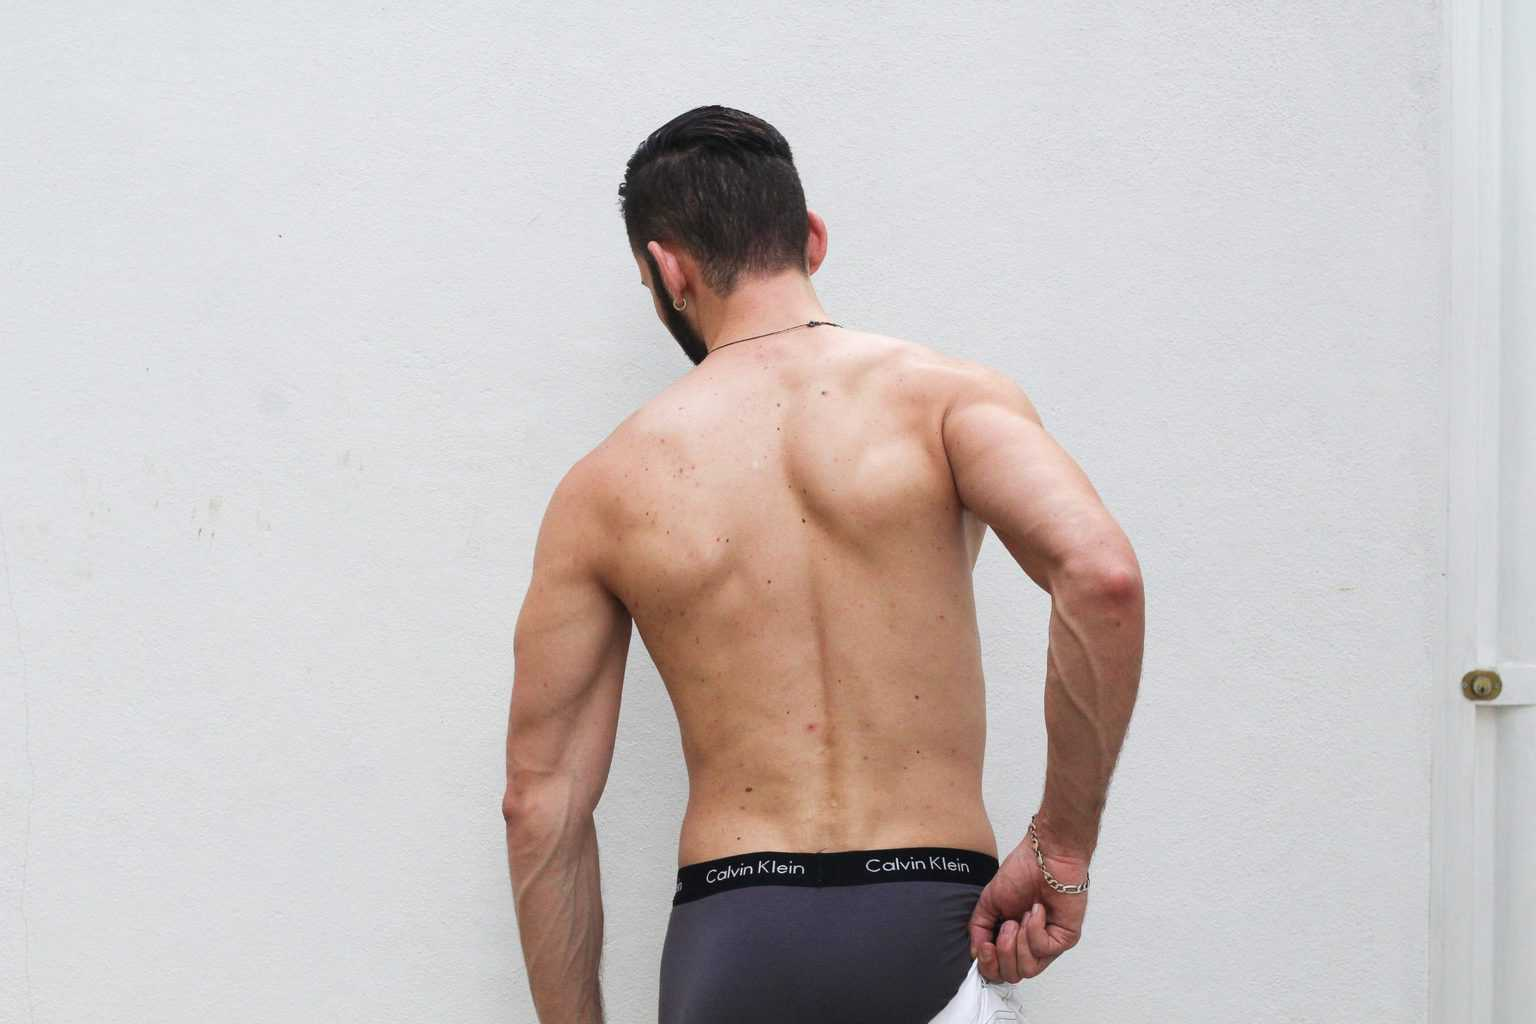 Boxers or Briefs? Finding an undergarment that fits